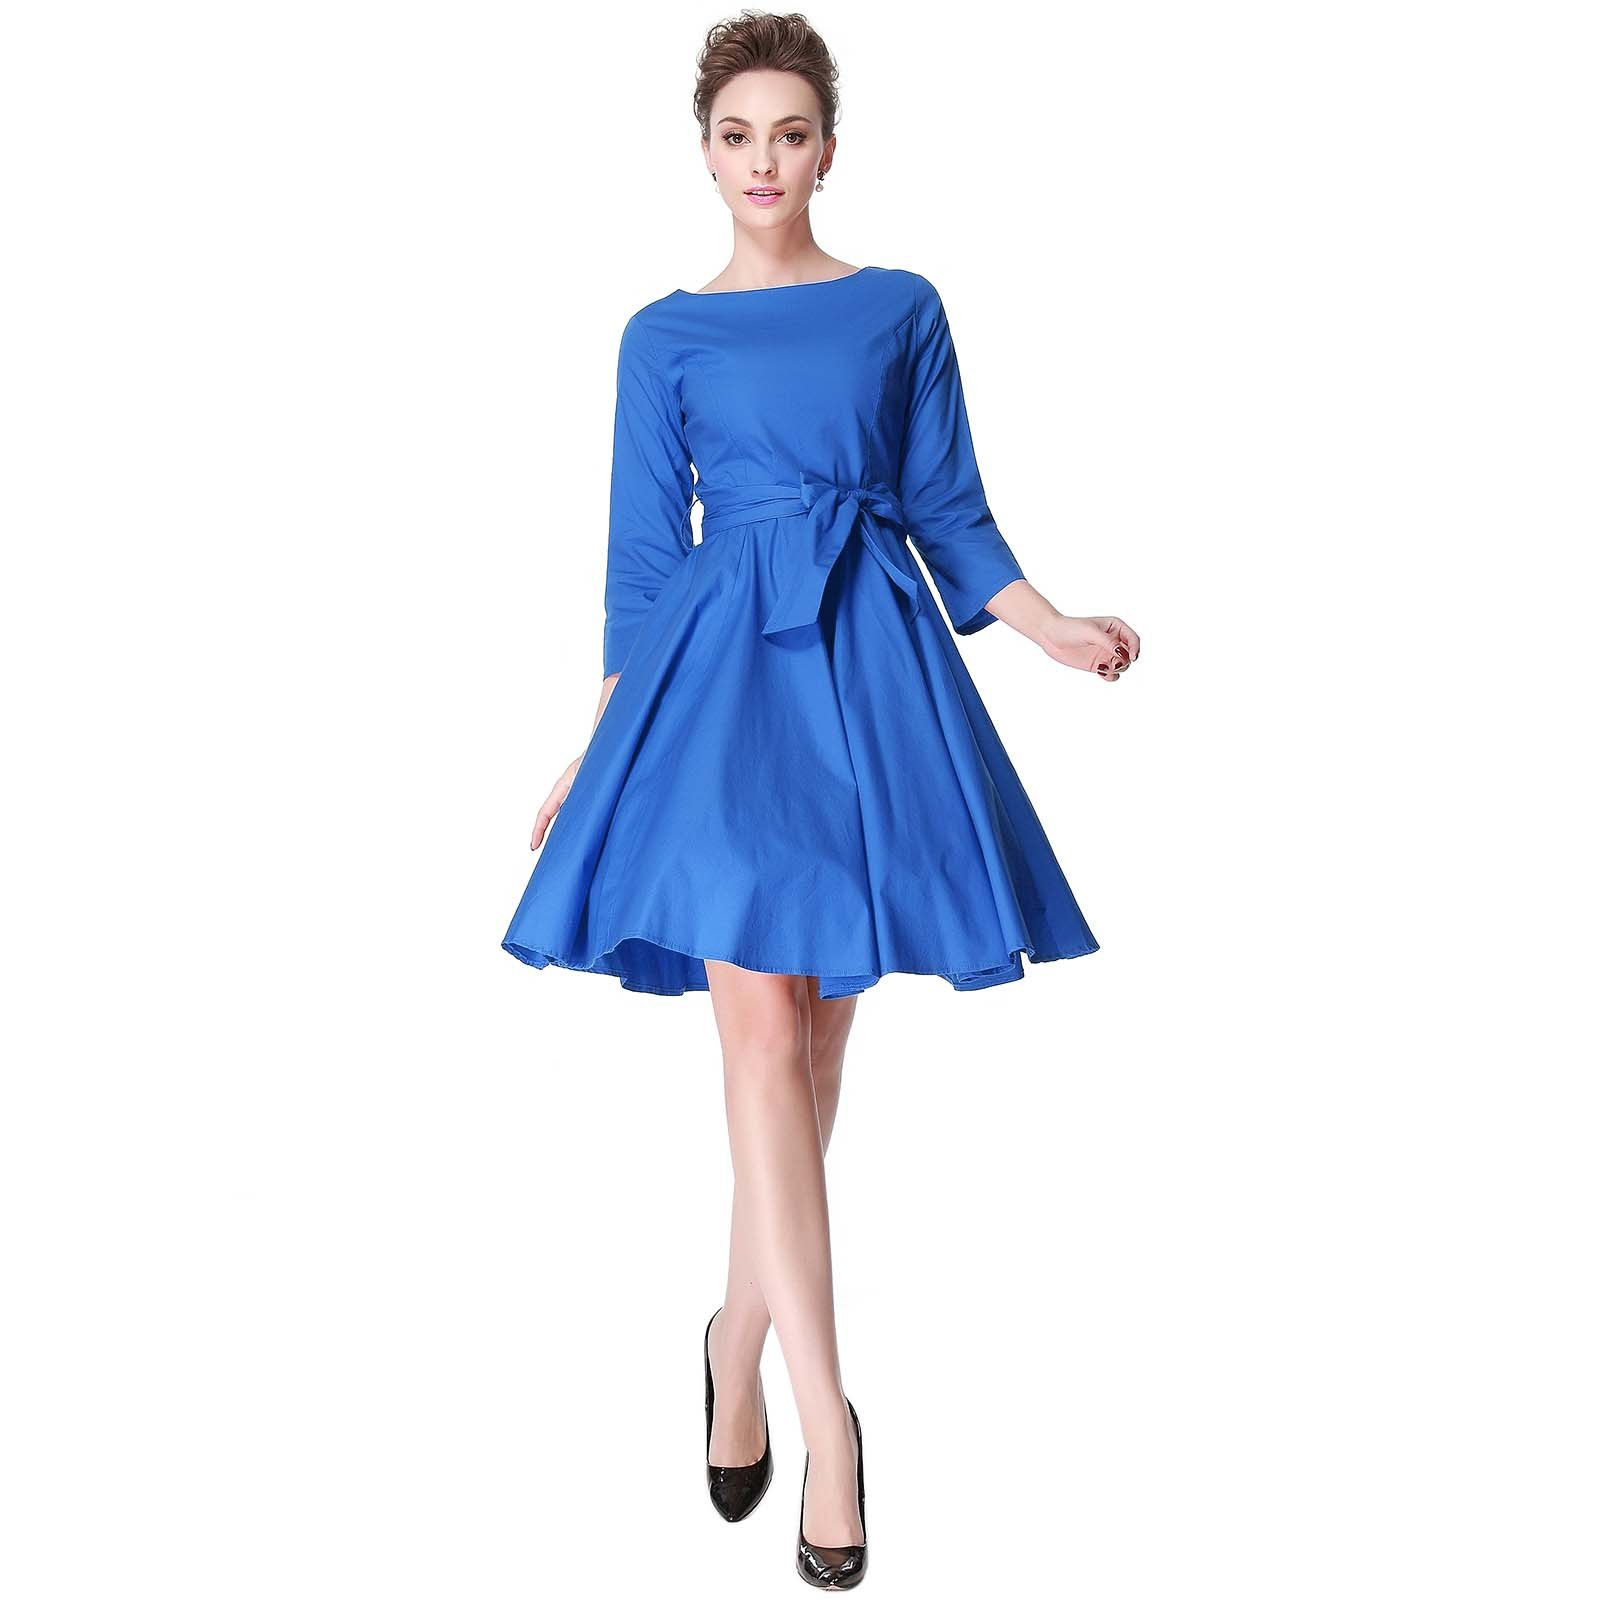 Heroecol 50s 60s Hepburn 3/4 Sleeve Style Vintage Retro Swing Rockailly Dresses Size L Color Blue by Heroecol